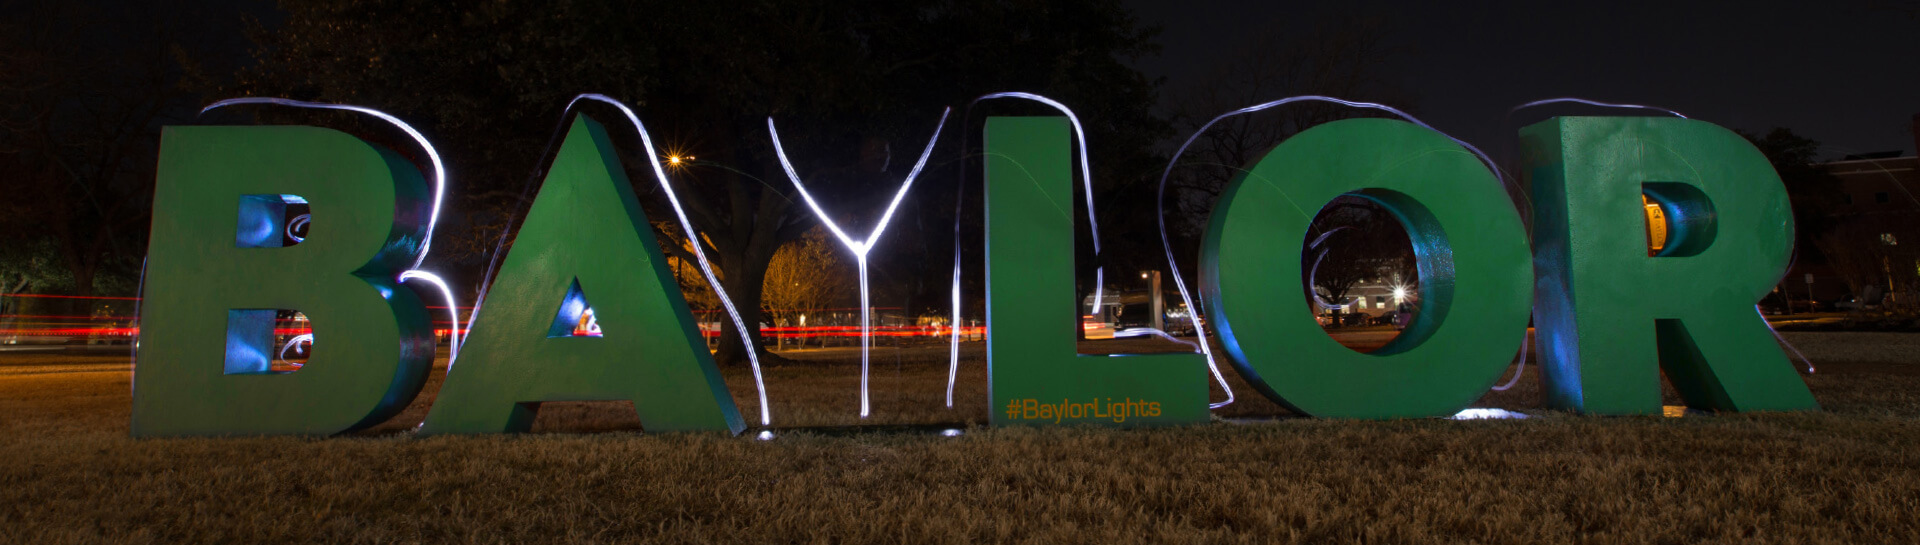 Baylor - Lights Shine Bright letters